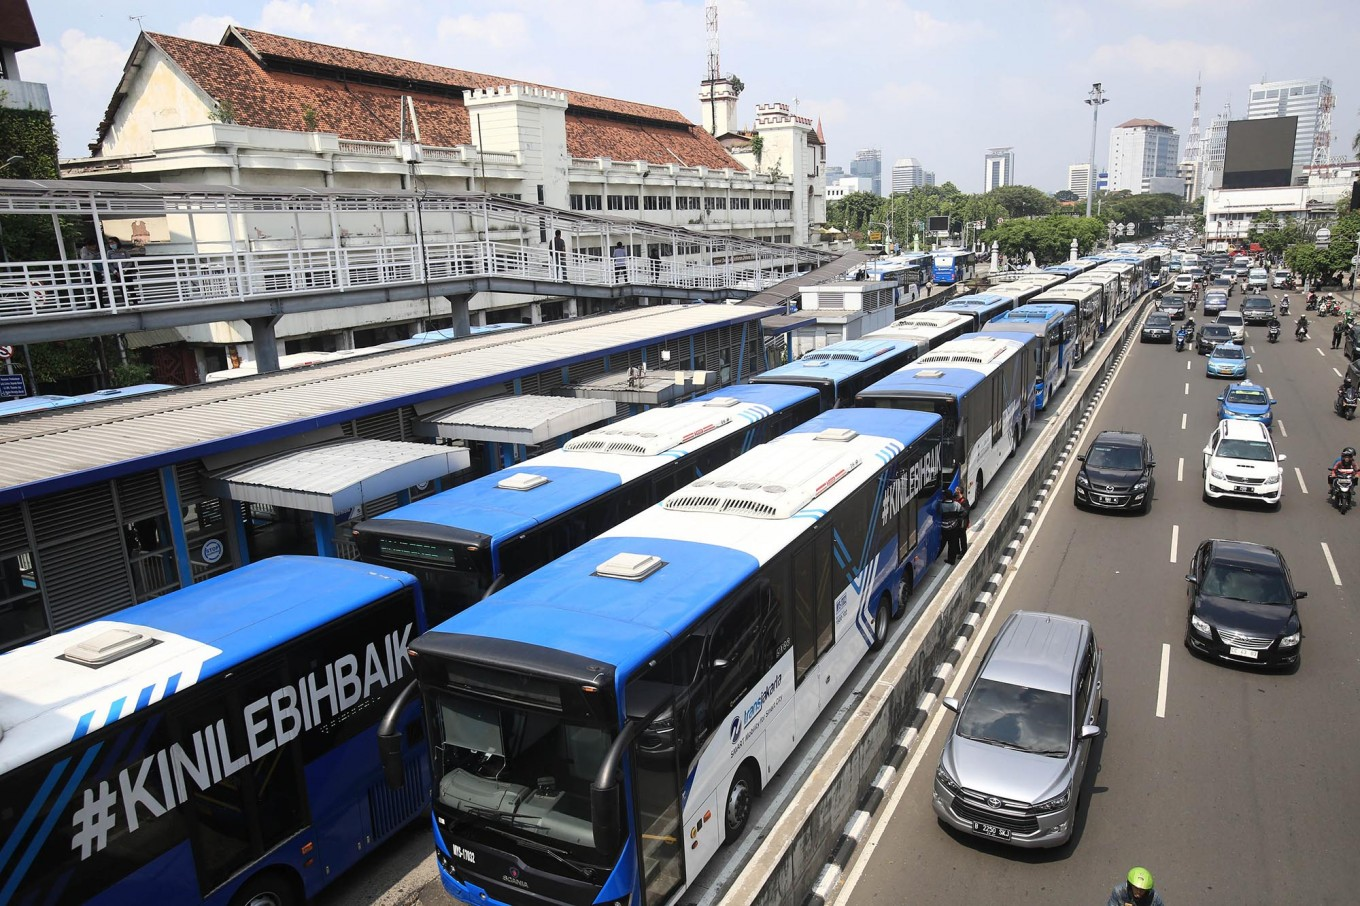 Transjakarta ordered to pay compensation to dismissed contract worker